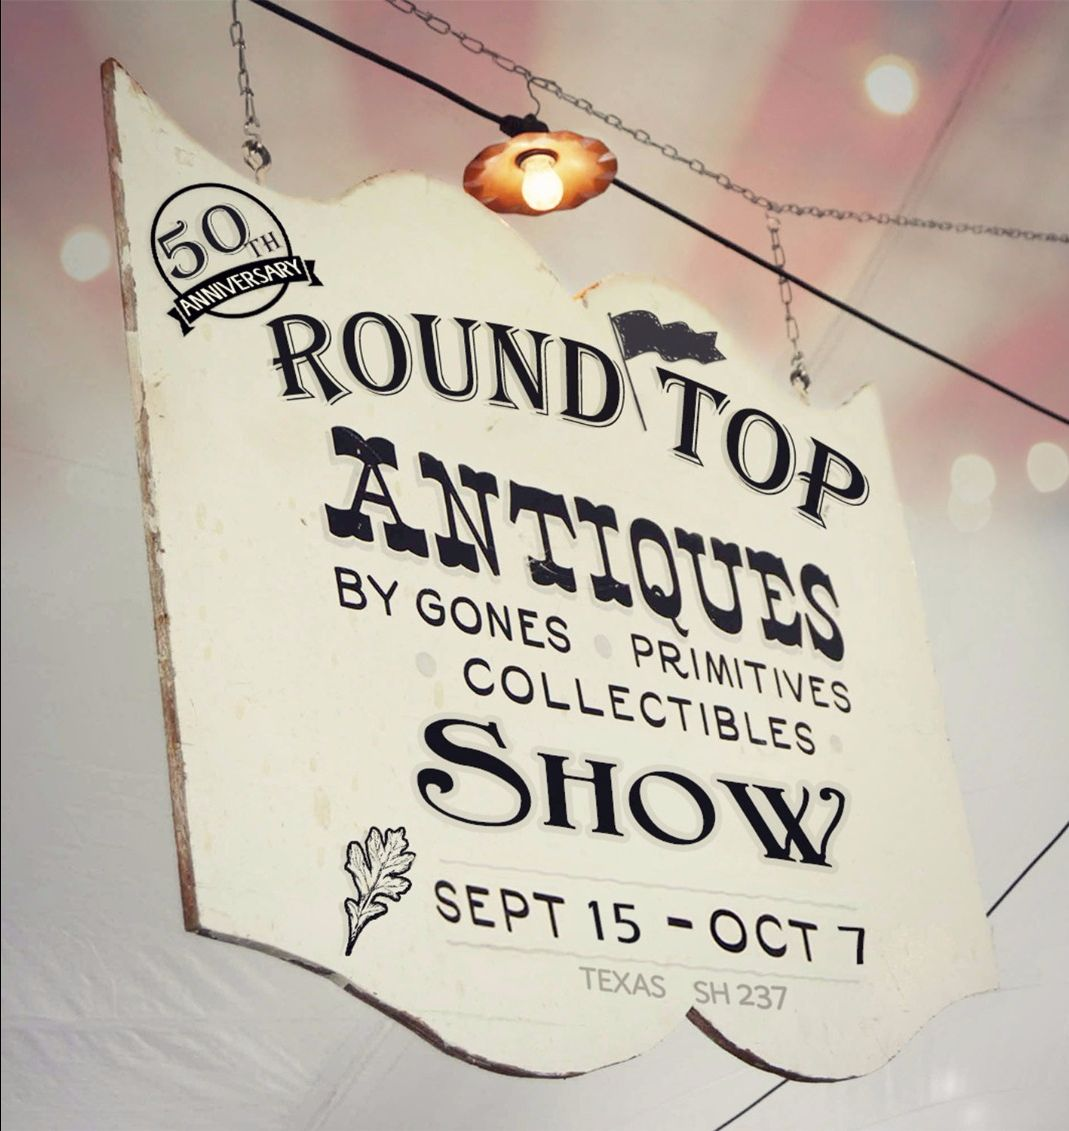 Round Top Texas Antiques Show